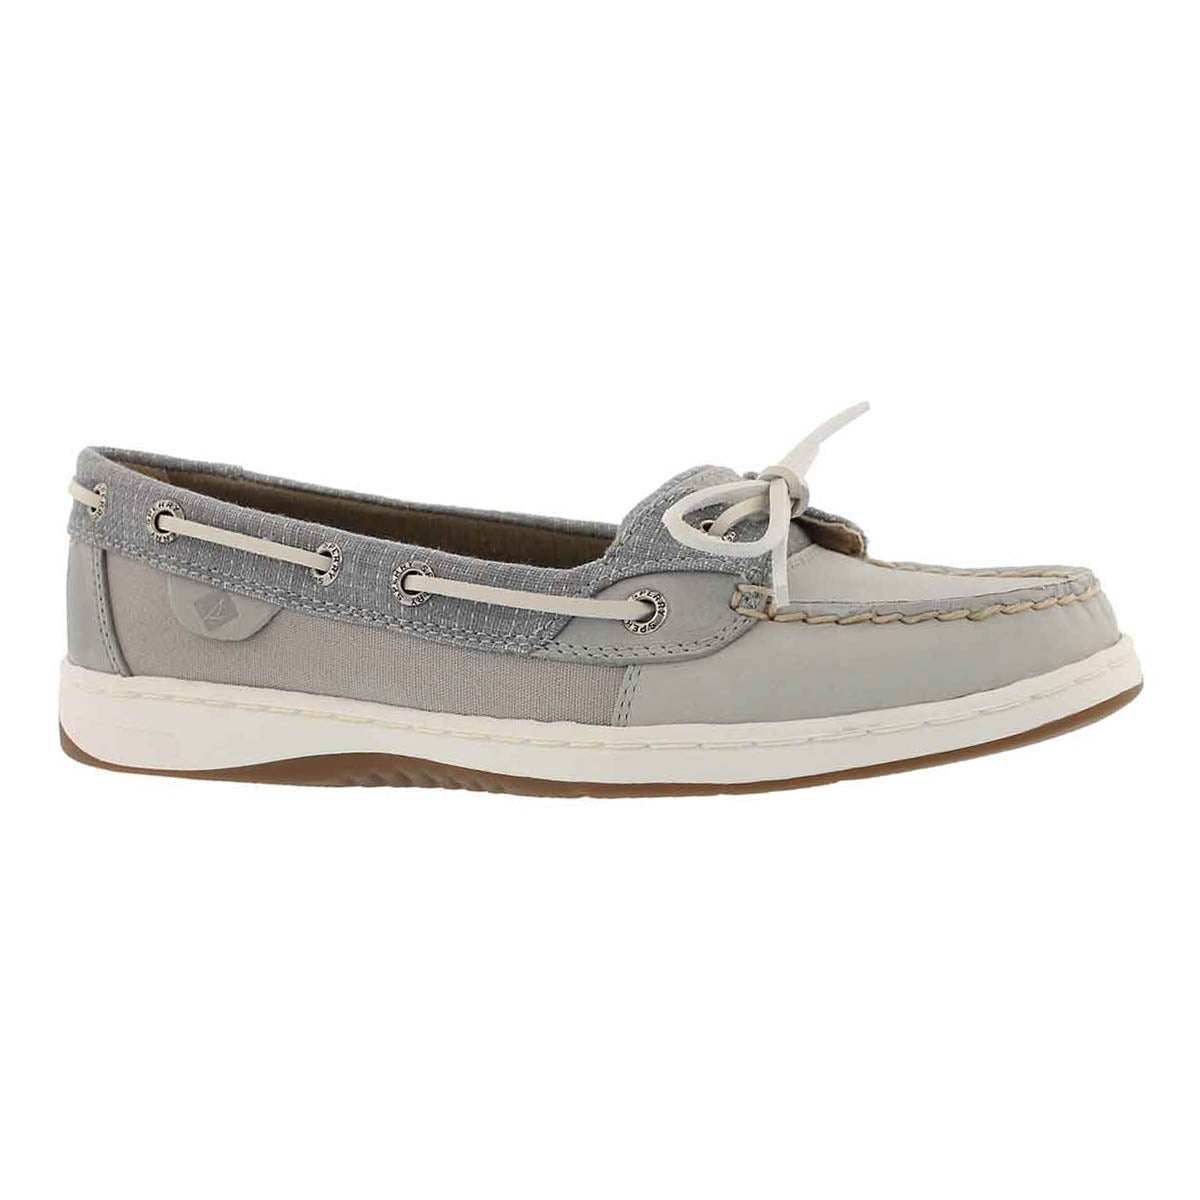 Women's ANGLEFISH TWO TONE vapor boat shoes